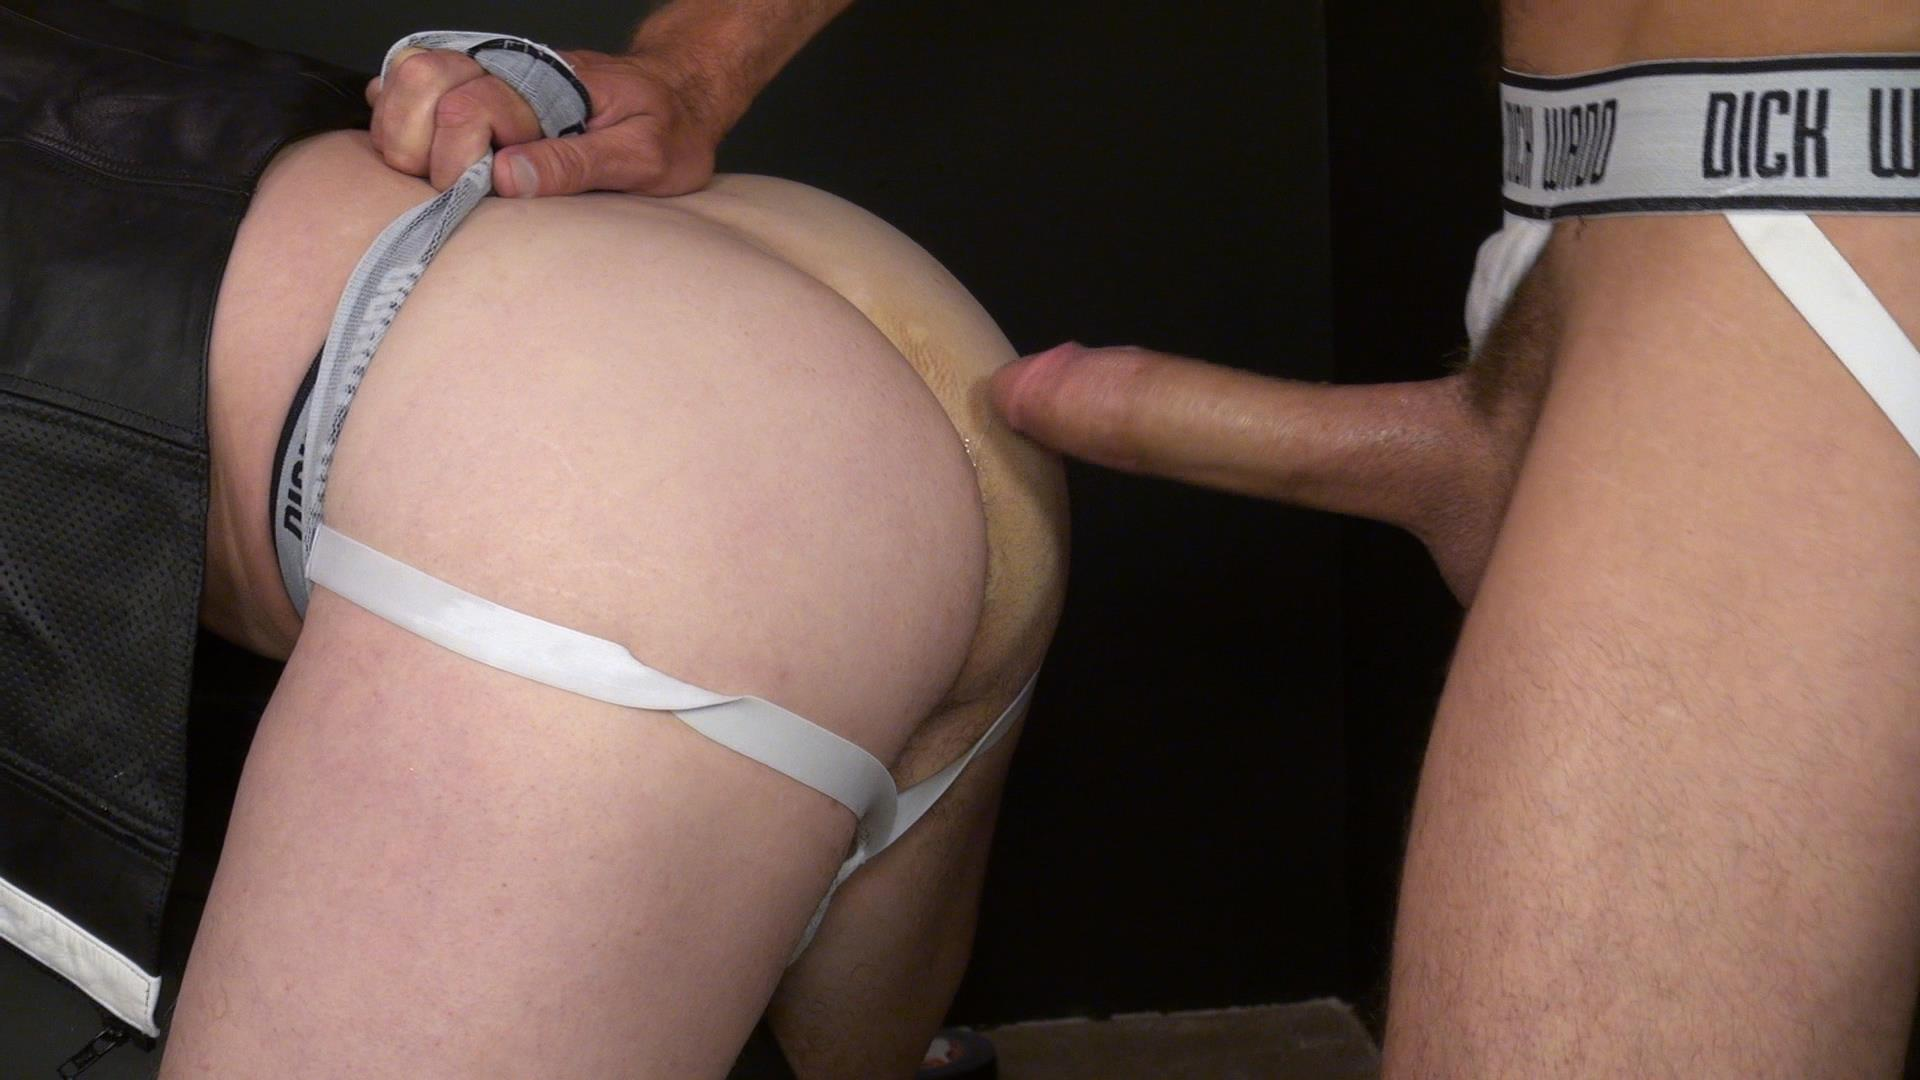 Raw-and-Rough-Nick-Roberts-and-Jason-Stormme-and-Super-Steve-Bareback-Bathhouse-Amateur-Gay-Porn-15 Jason Stormme Gets His Ass Spread Raw With 2 Bareback Cocks